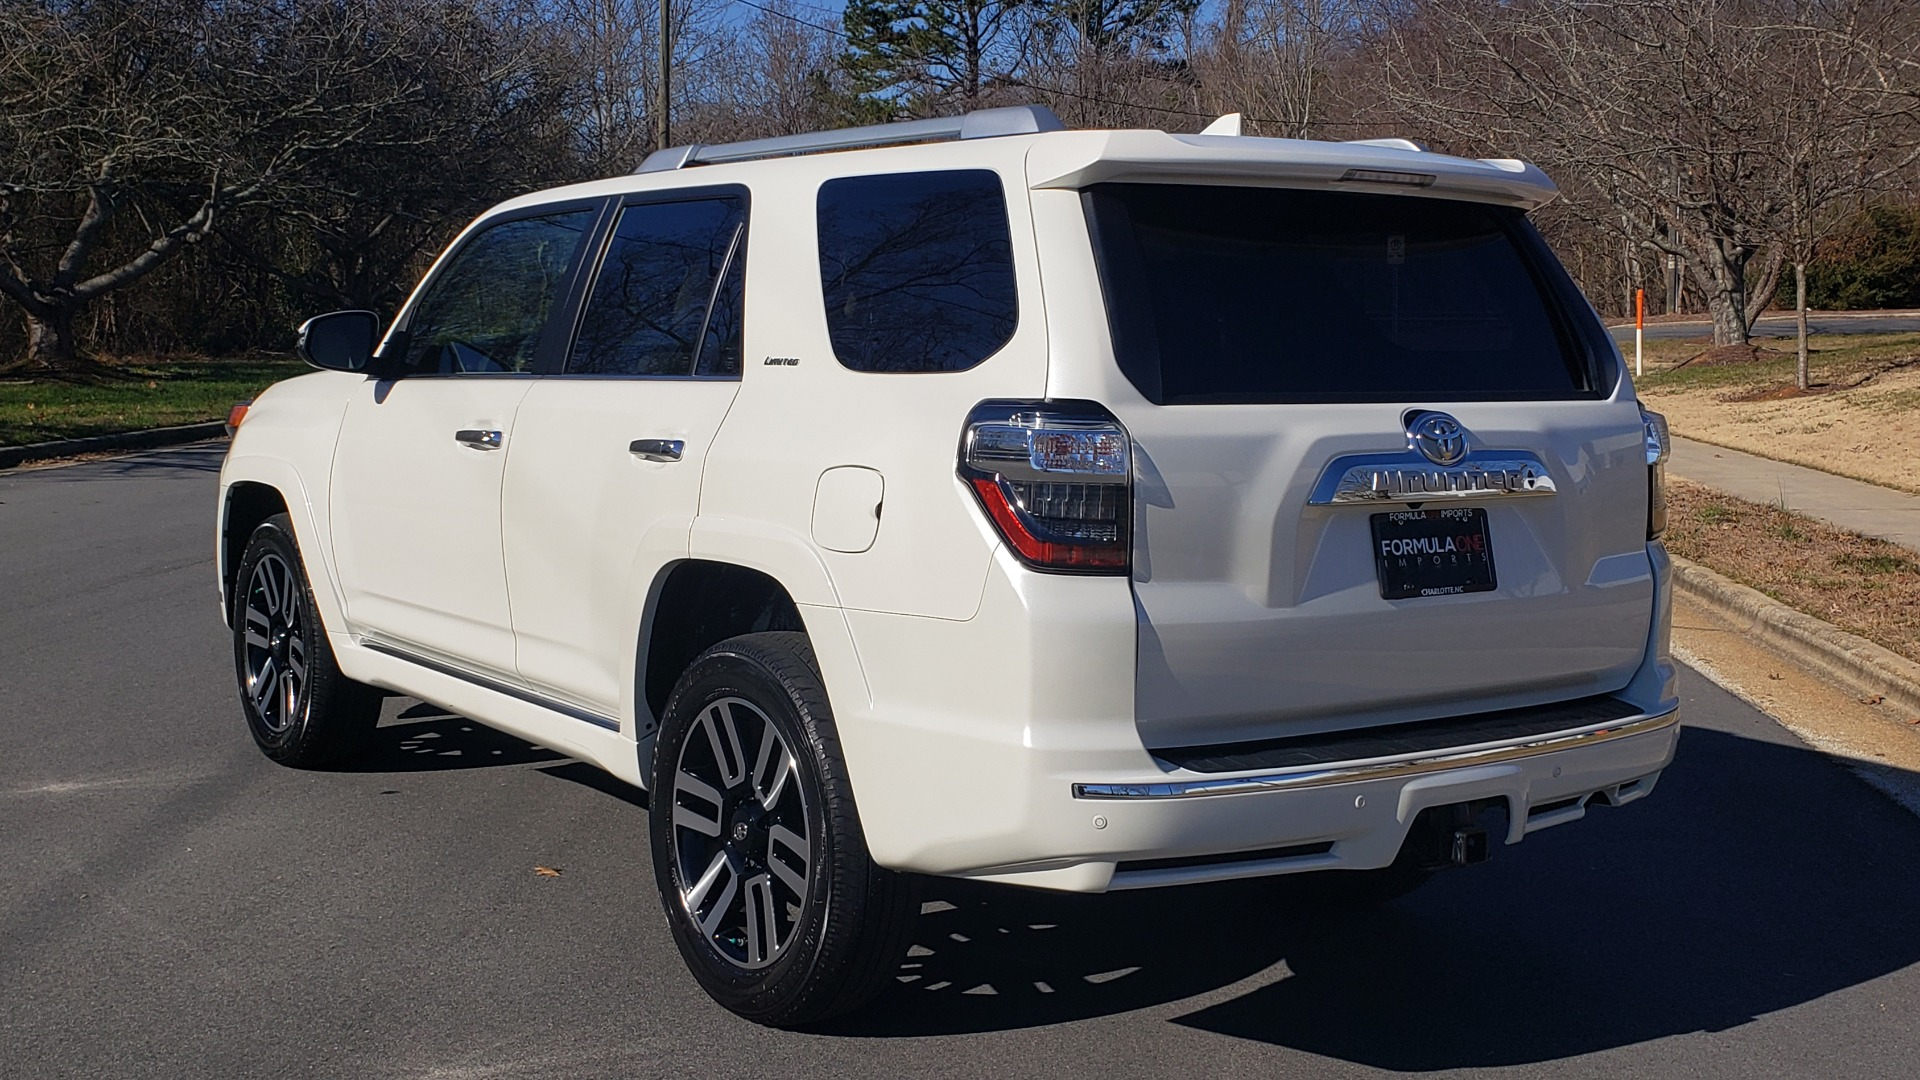 Used 2018 Toyota 4RUNNER LIMITED 4X4 / 4.0L V6 / AUTO / NAV / SUNROOF / JBL AUDIO / REARVIEW for sale Sold at Formula Imports in Charlotte NC 28227 3